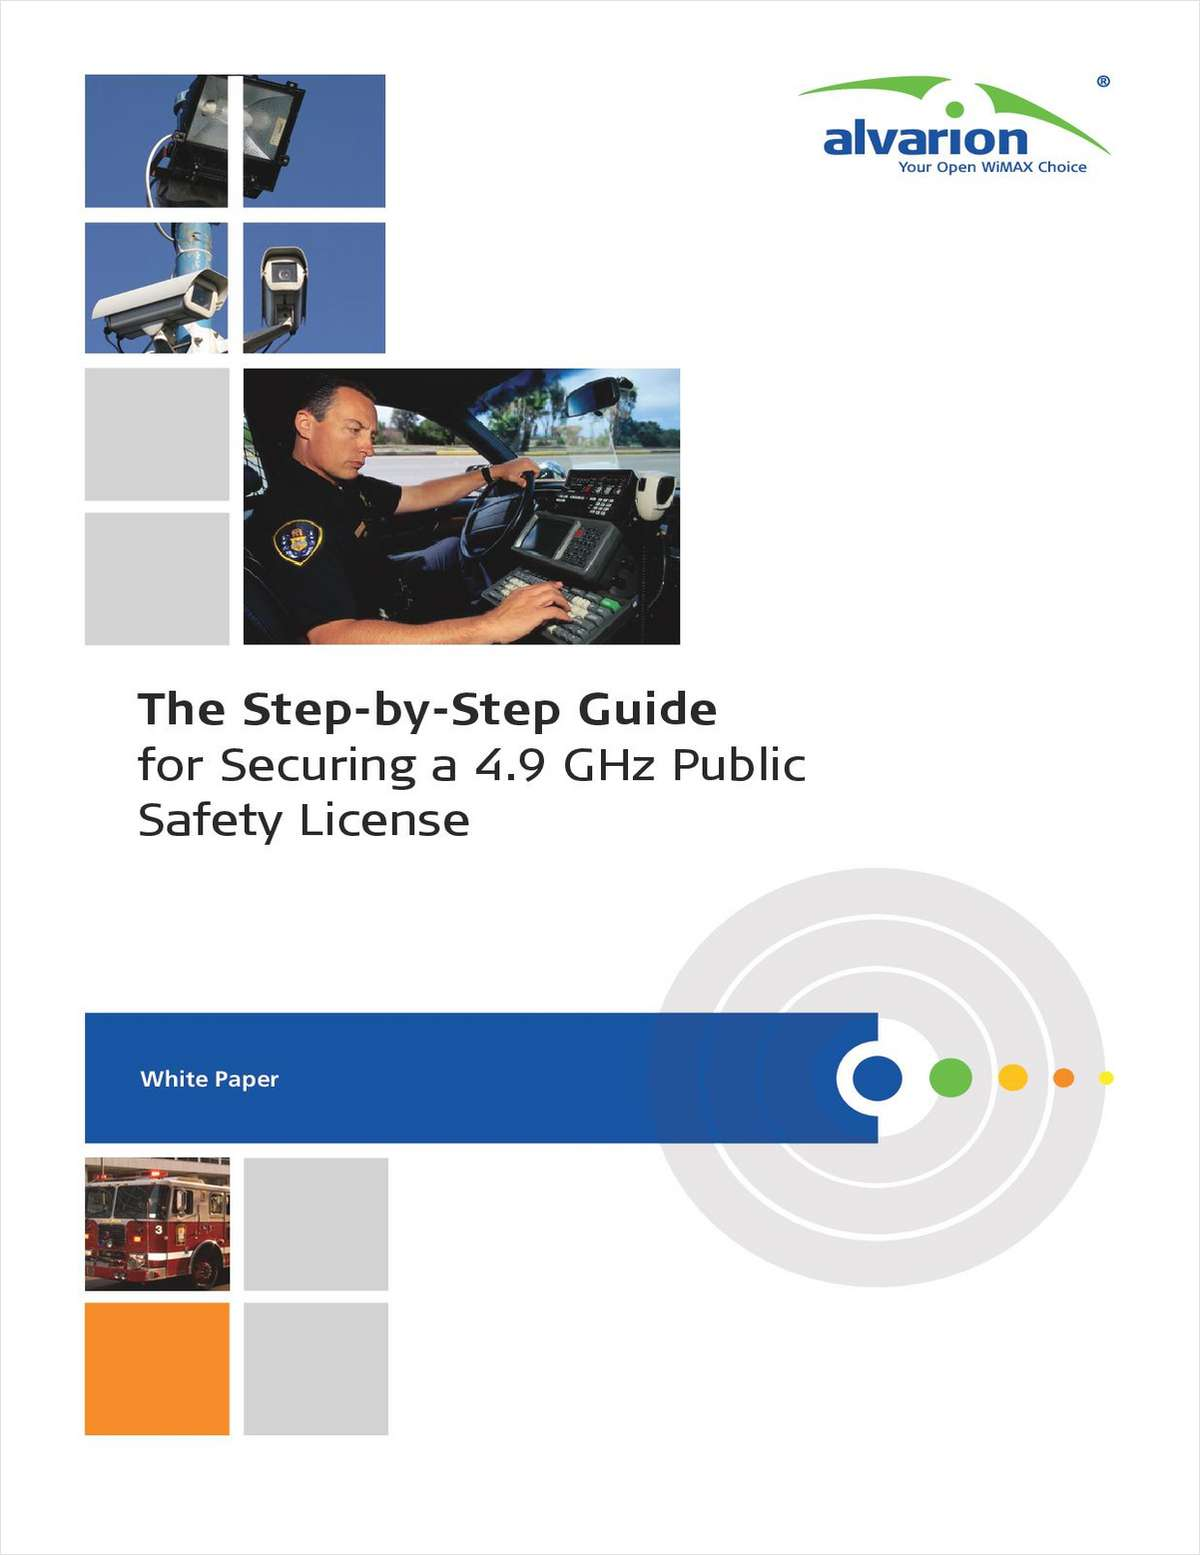 The Step-by-Step Guide for Securing a 4.9 GHz Public Safety License